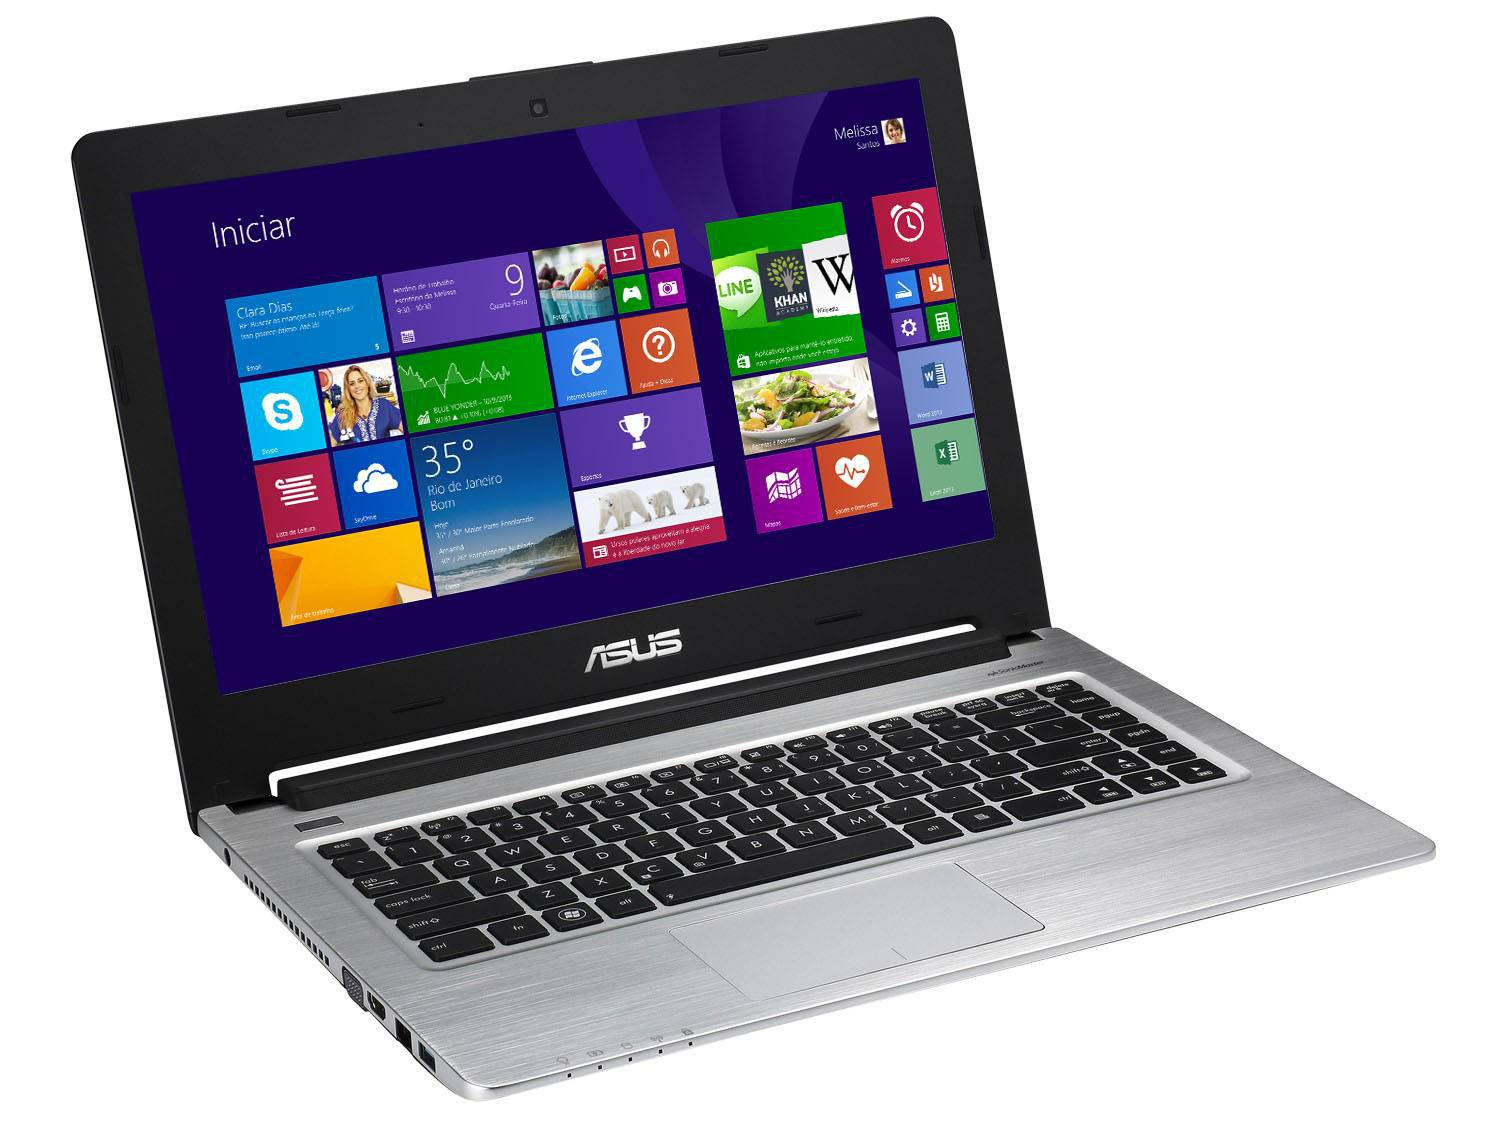 Comprar Ultrabook Asus Intel Core i7 Windows 8 LED 14 com Placa de Vídeo 2GB HDMI